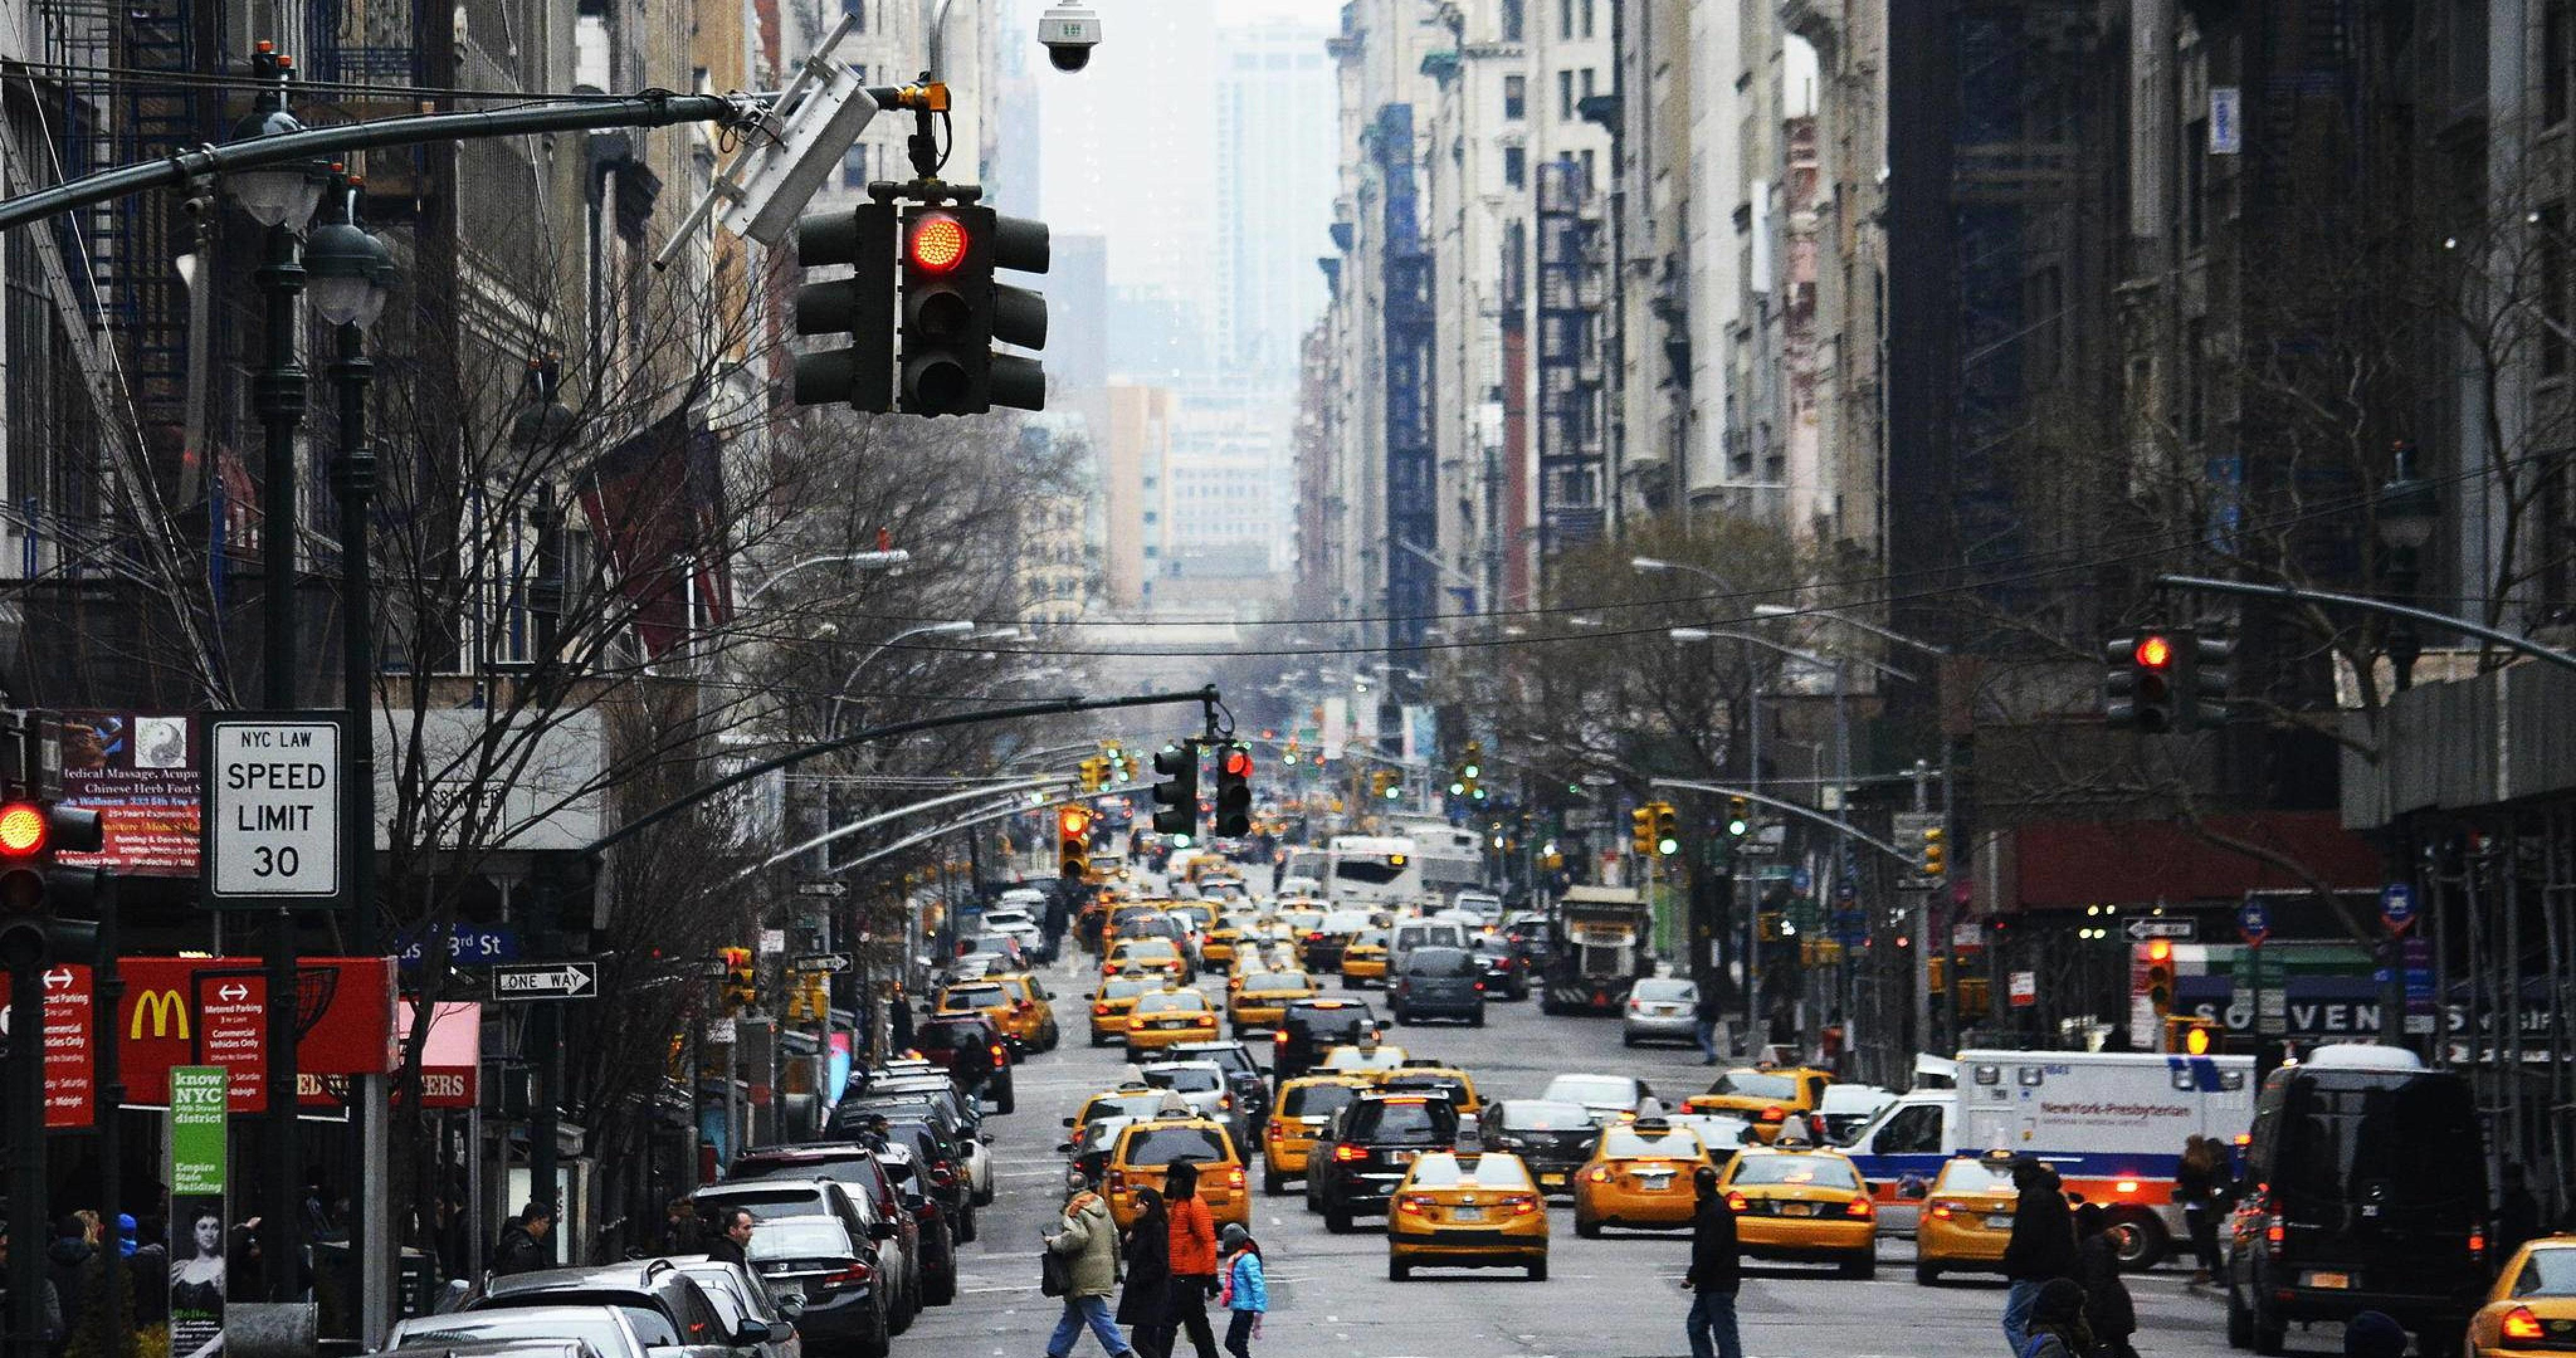 More Wallpaper Collections - New York 4k Ultra Hd , HD Wallpaper & Backgrounds